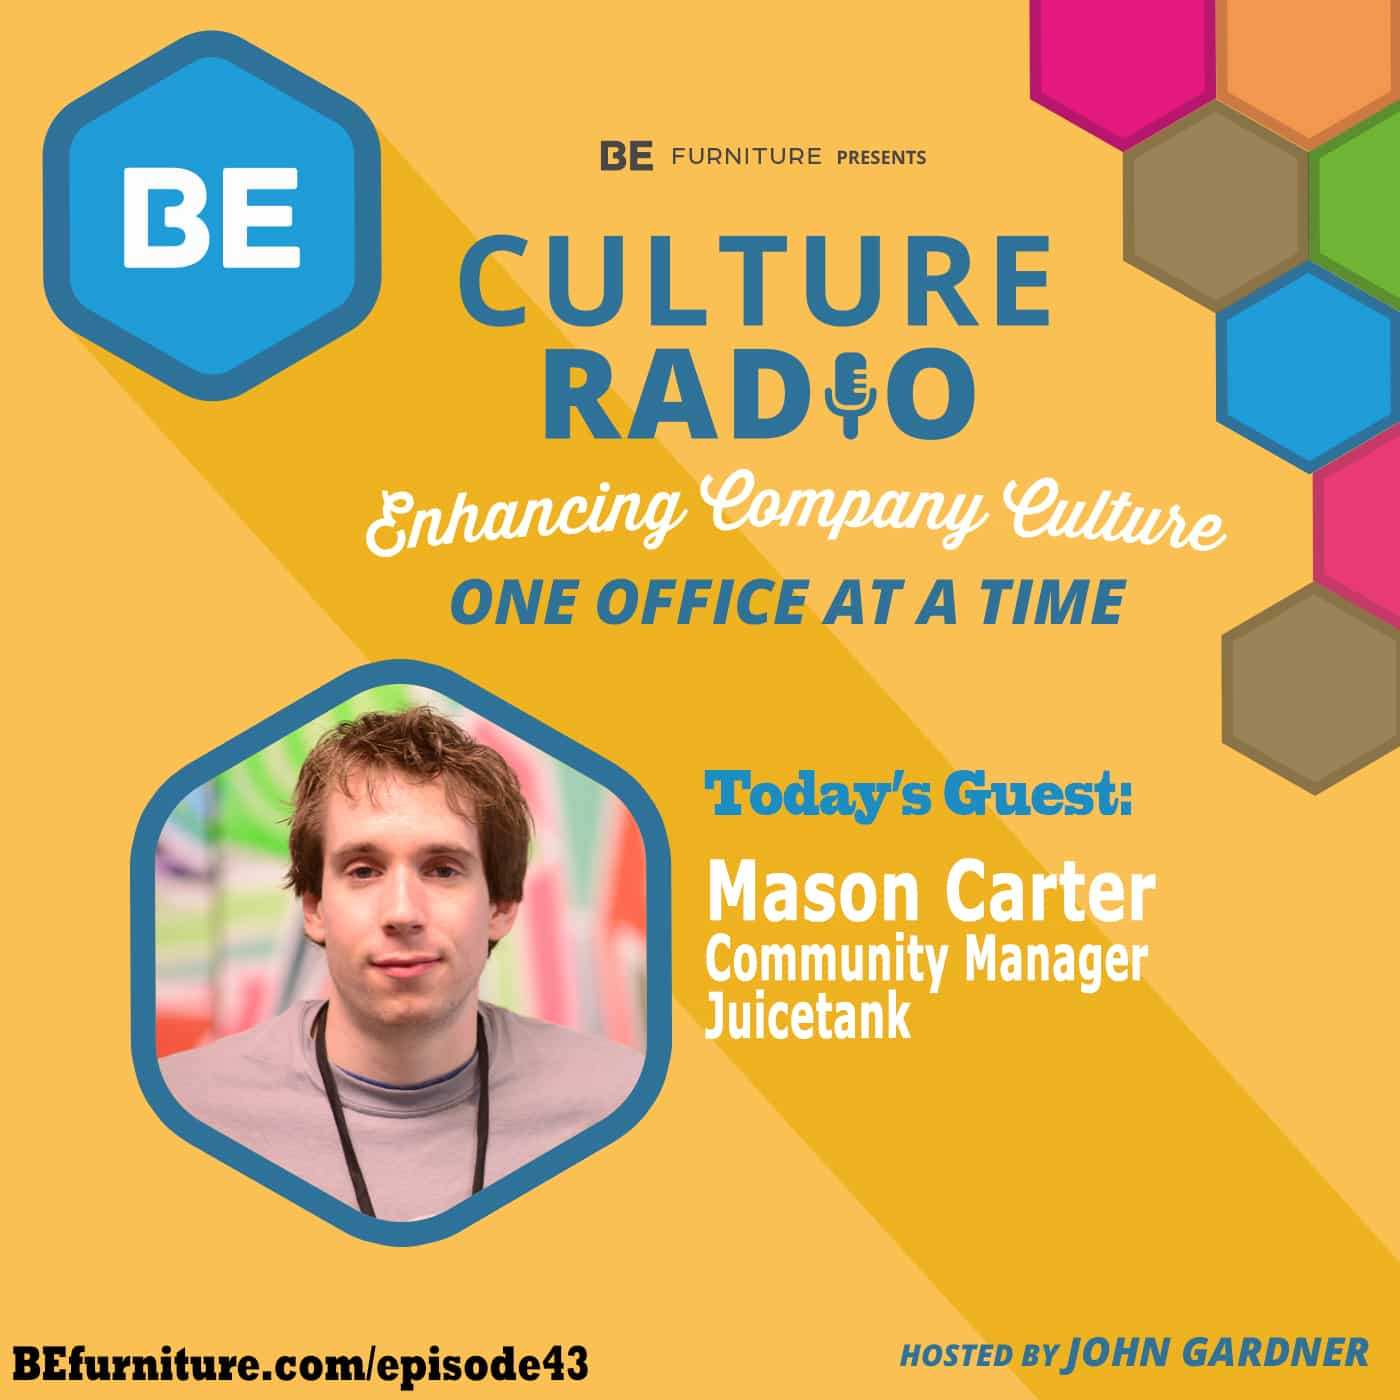 Mason Carter - Community Manager, Juicetank